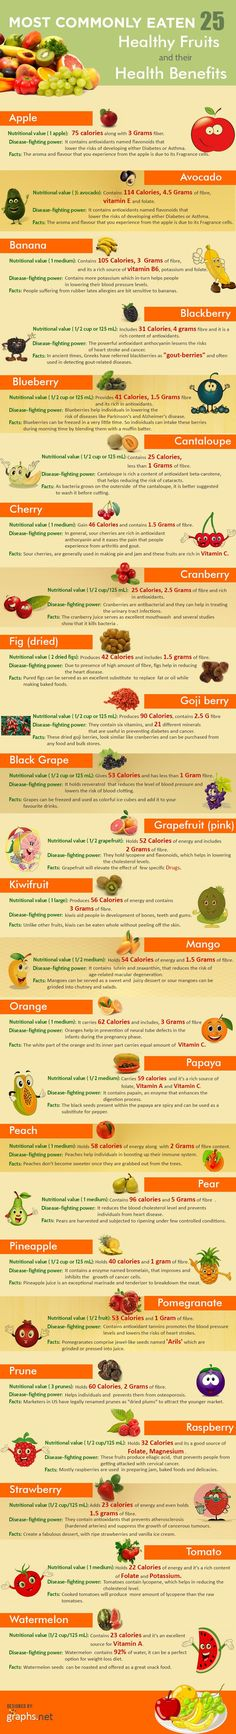 25 Healthy Fruits And Their Health Benefits #Infographic #infografía Bananas are very soothing to the gastrointestinal tract because of the high content of the soluble fiber pectin. The pectin helps to normalize bowel function and has shown some promise for the treatment of peptic ulcers. They also contain compounds called protease inhibitors which help eliminate harmful bacteria like H. Pylori